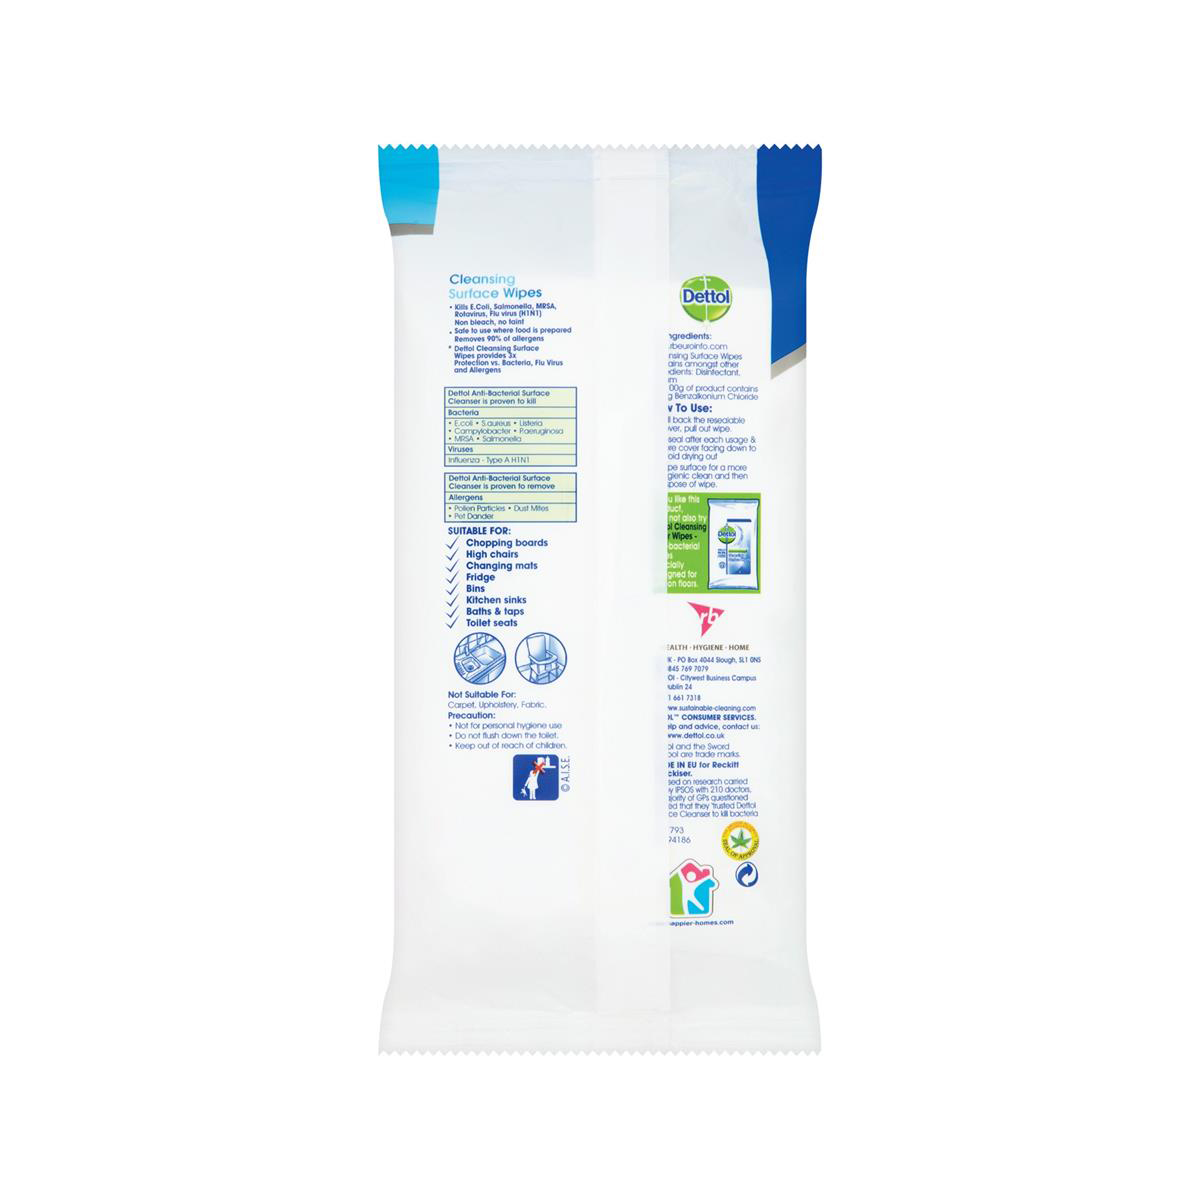 Dettol Antibacterial Surface Cleaning Wipes Ref 3007228 84 Wipes 3 for 2 Jul 2019